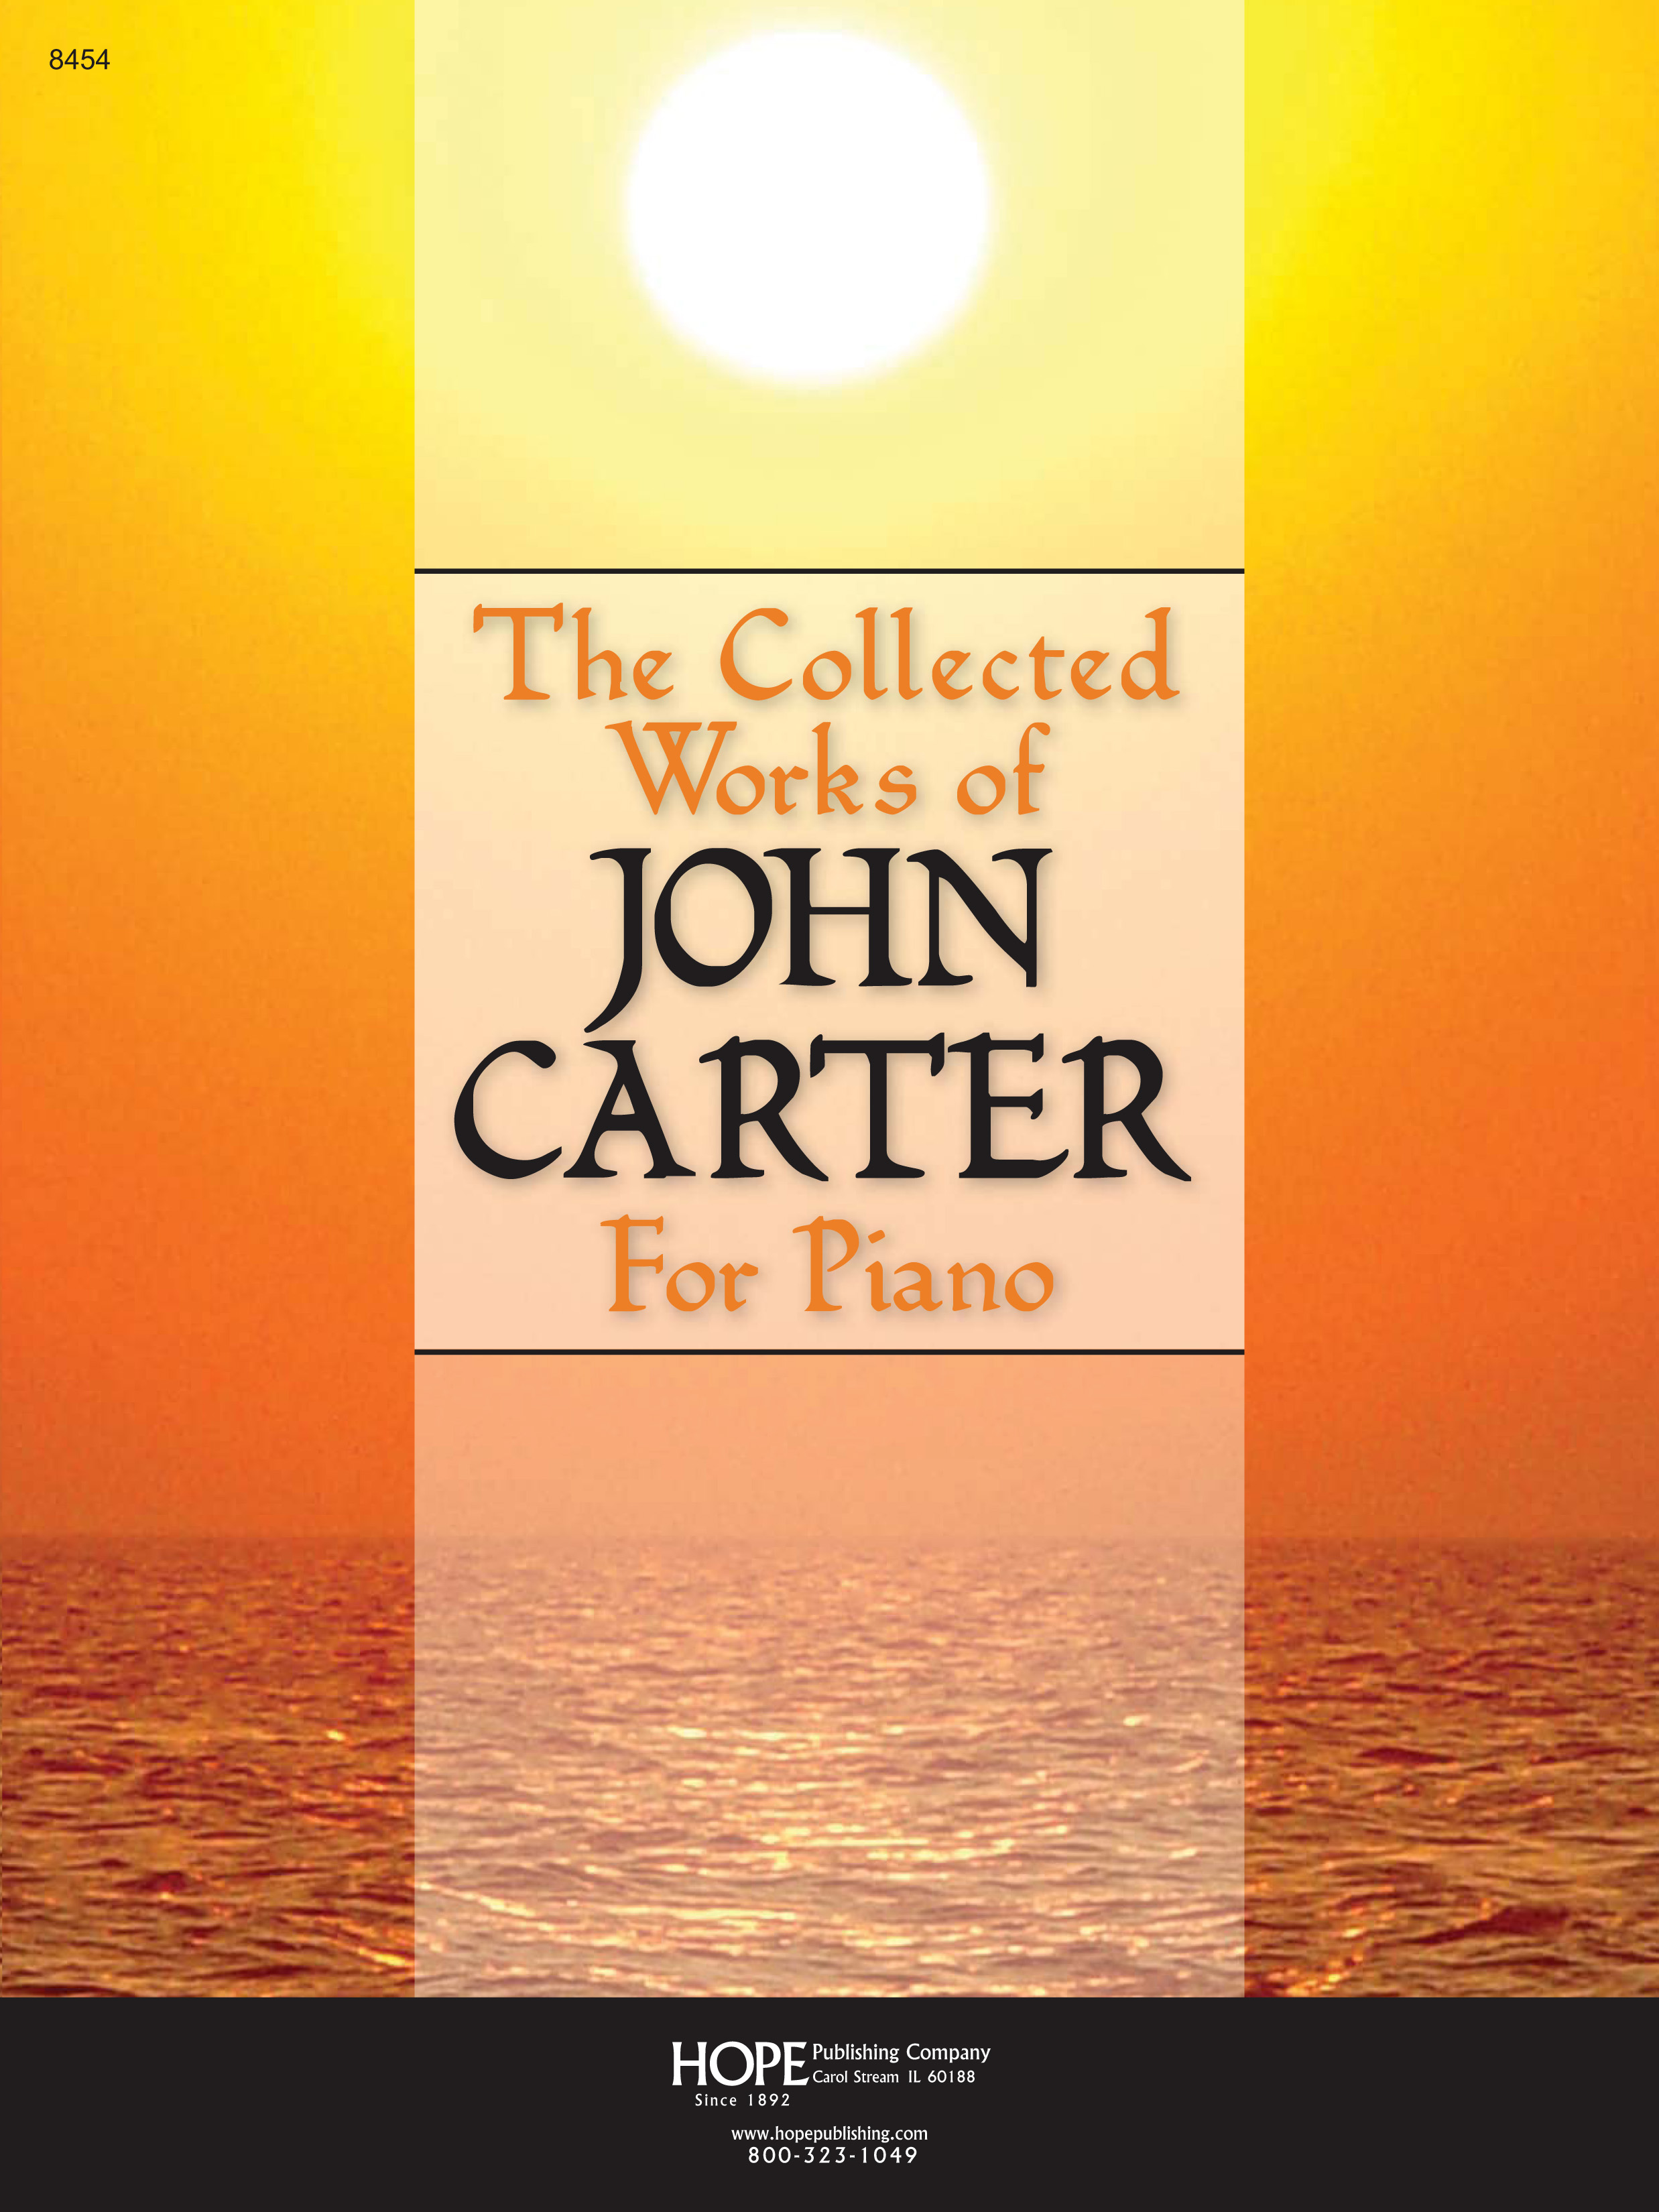 The Collected Works of John Carter